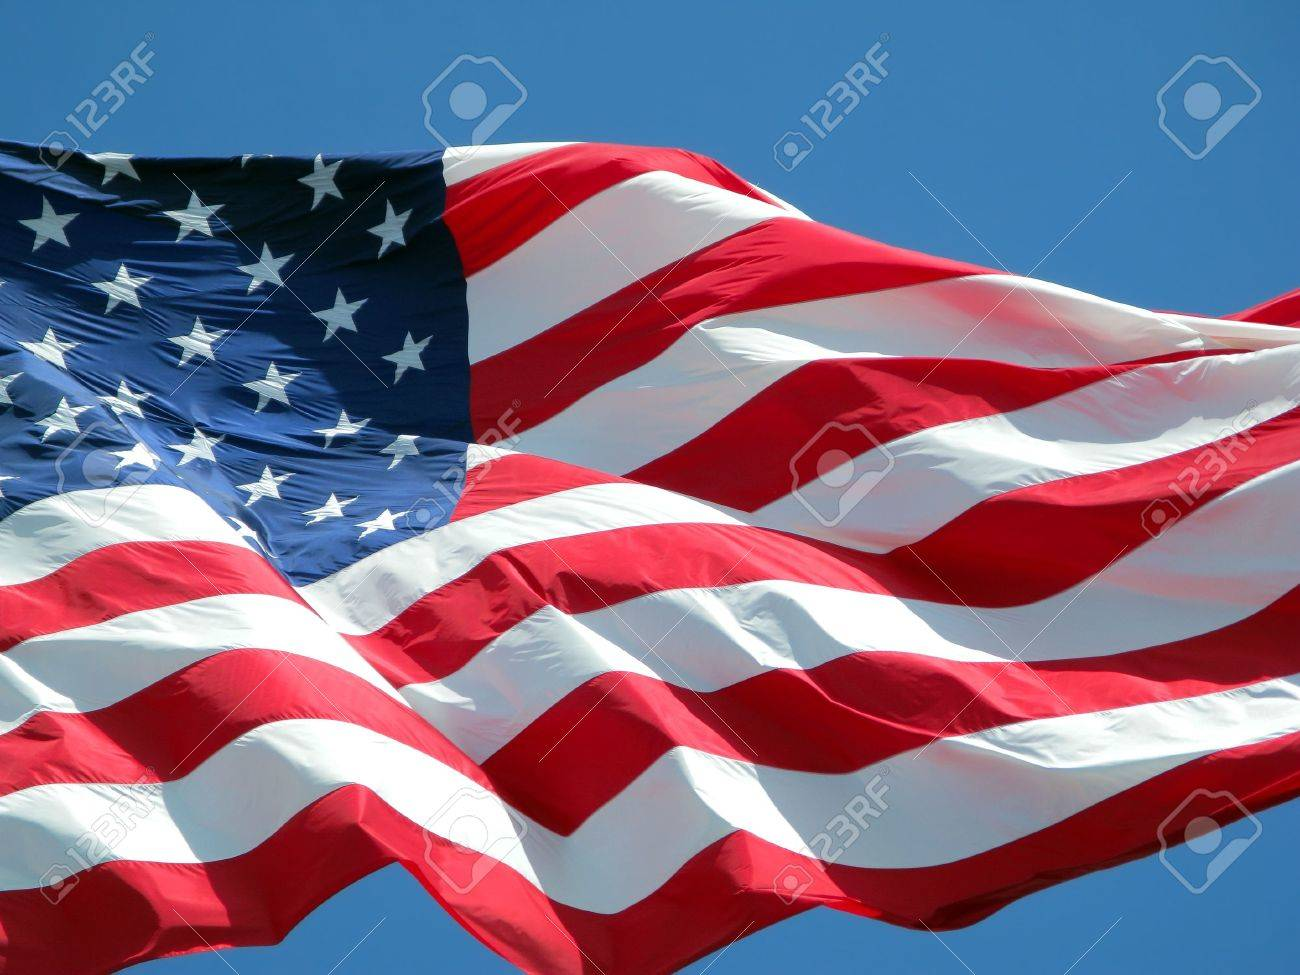 Waving American flag against a blue sky background. Stock Photo - 3294139